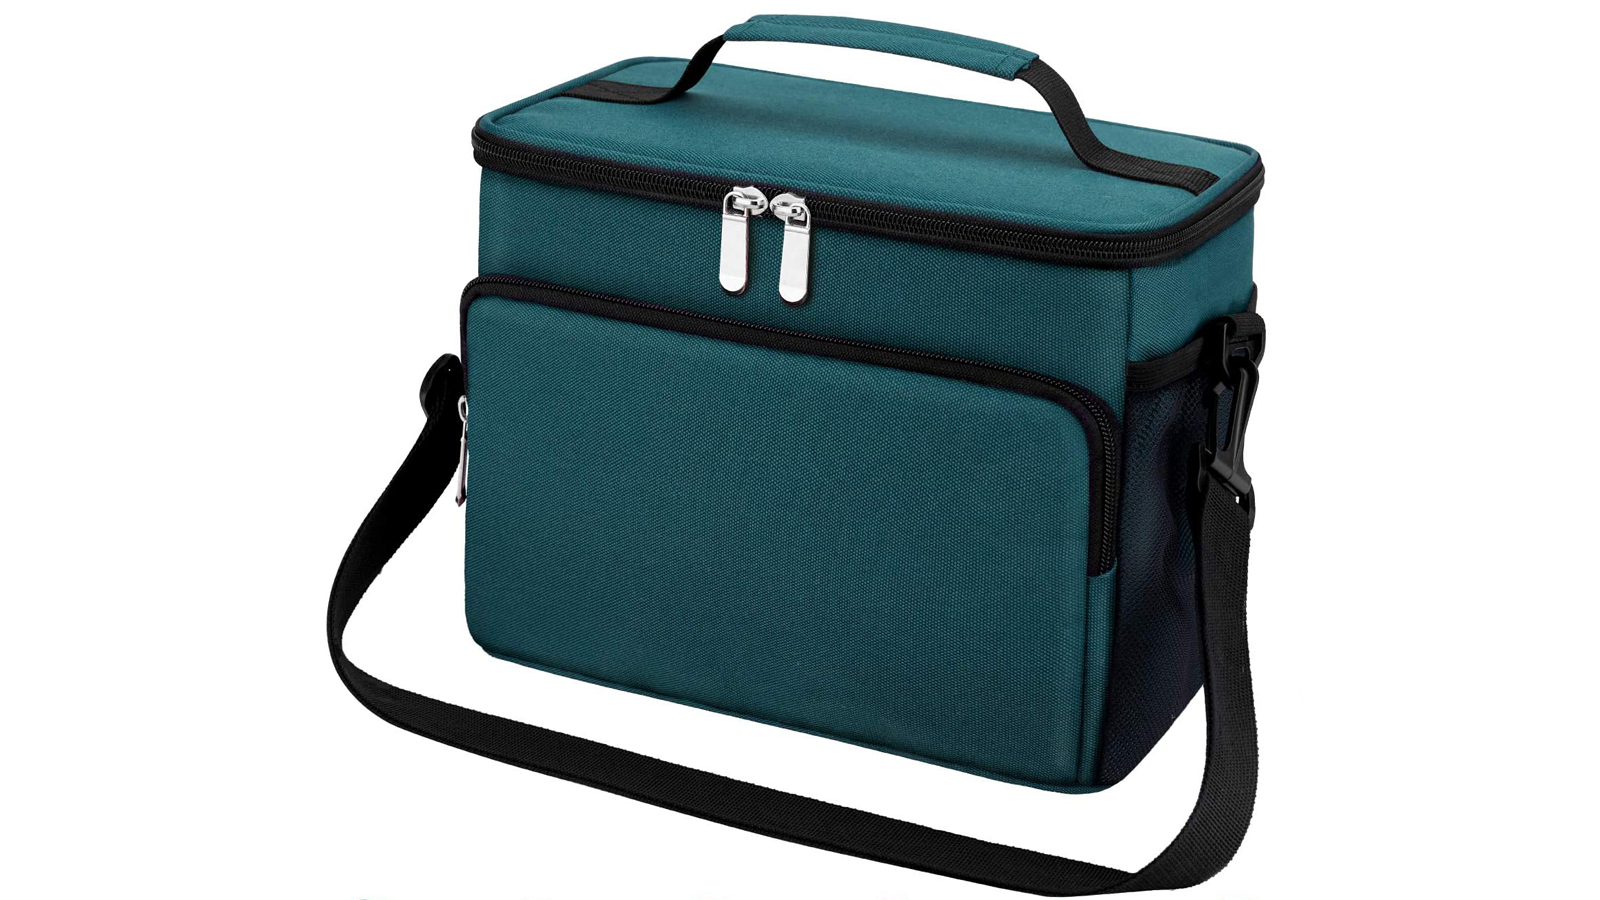 Need a New Insulated Cooler Lunch Bag? We Love This One.